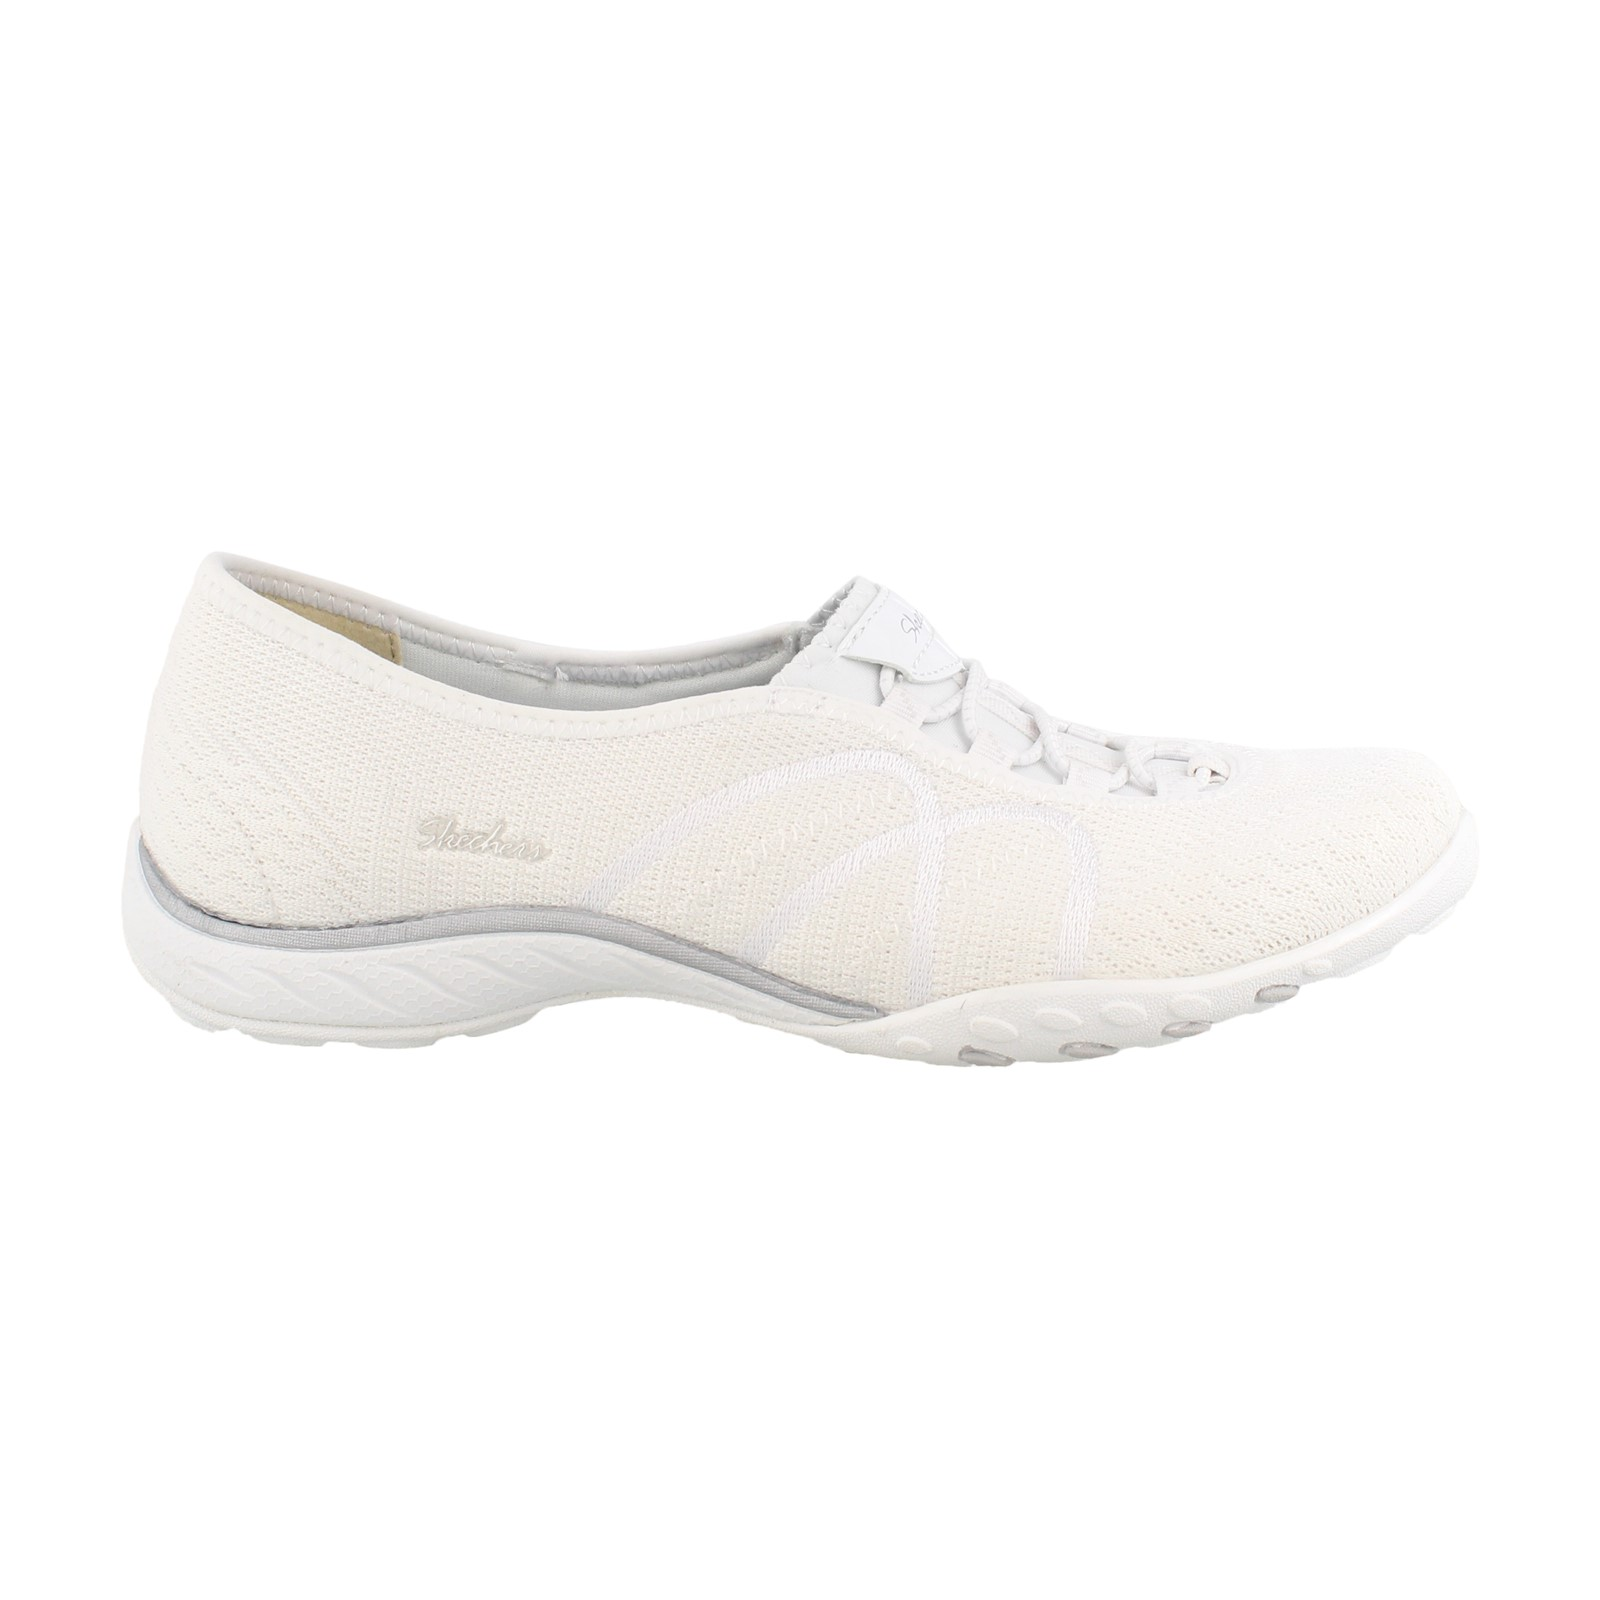 Women's Skechers, Relaxed Fit Breathe Easy Sweet Jam Wide Width